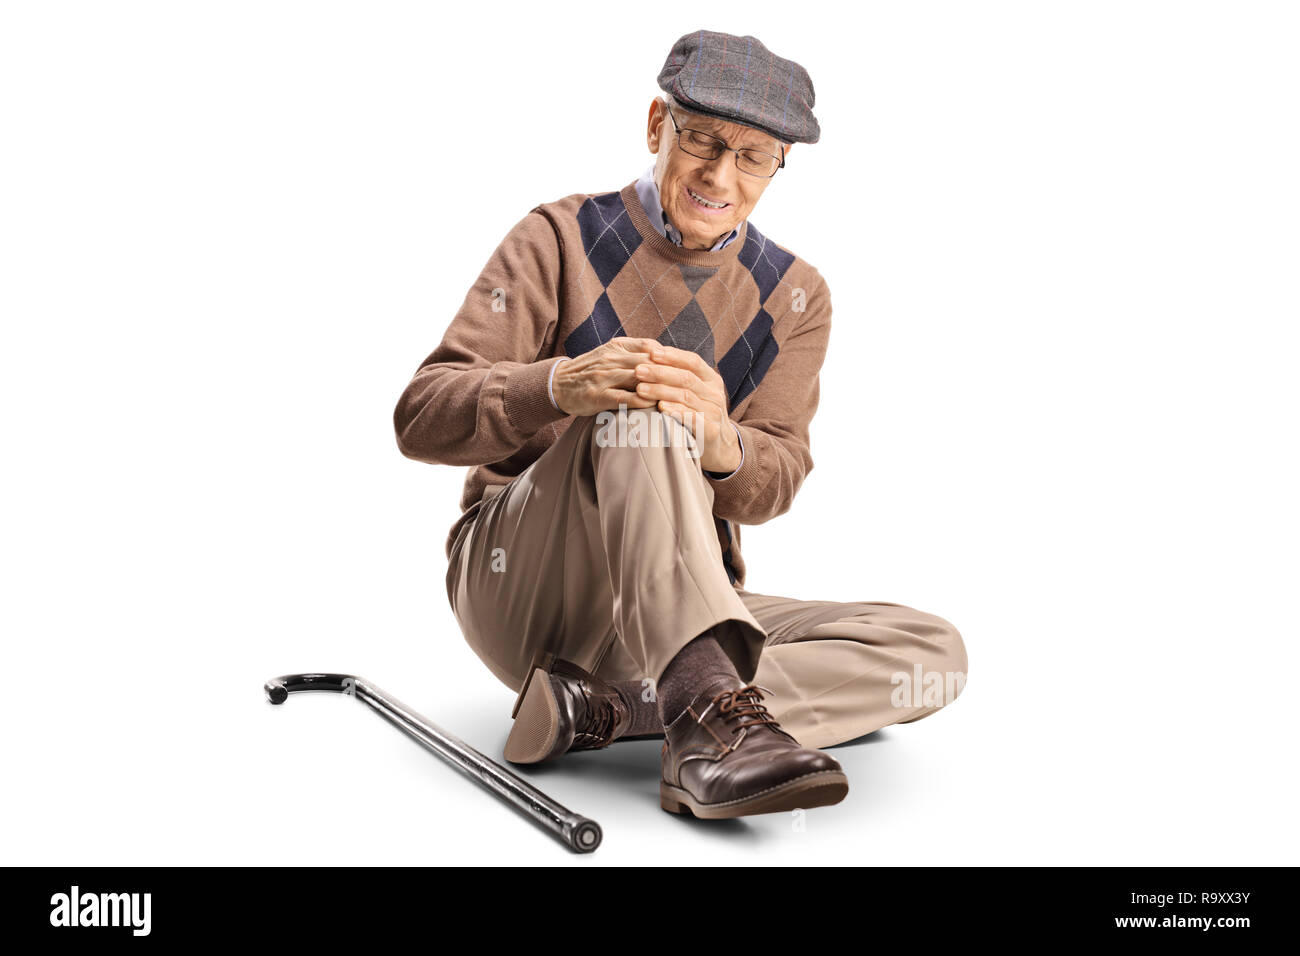 Senior man sitting on the floor and holding his painful knee - Stock Image